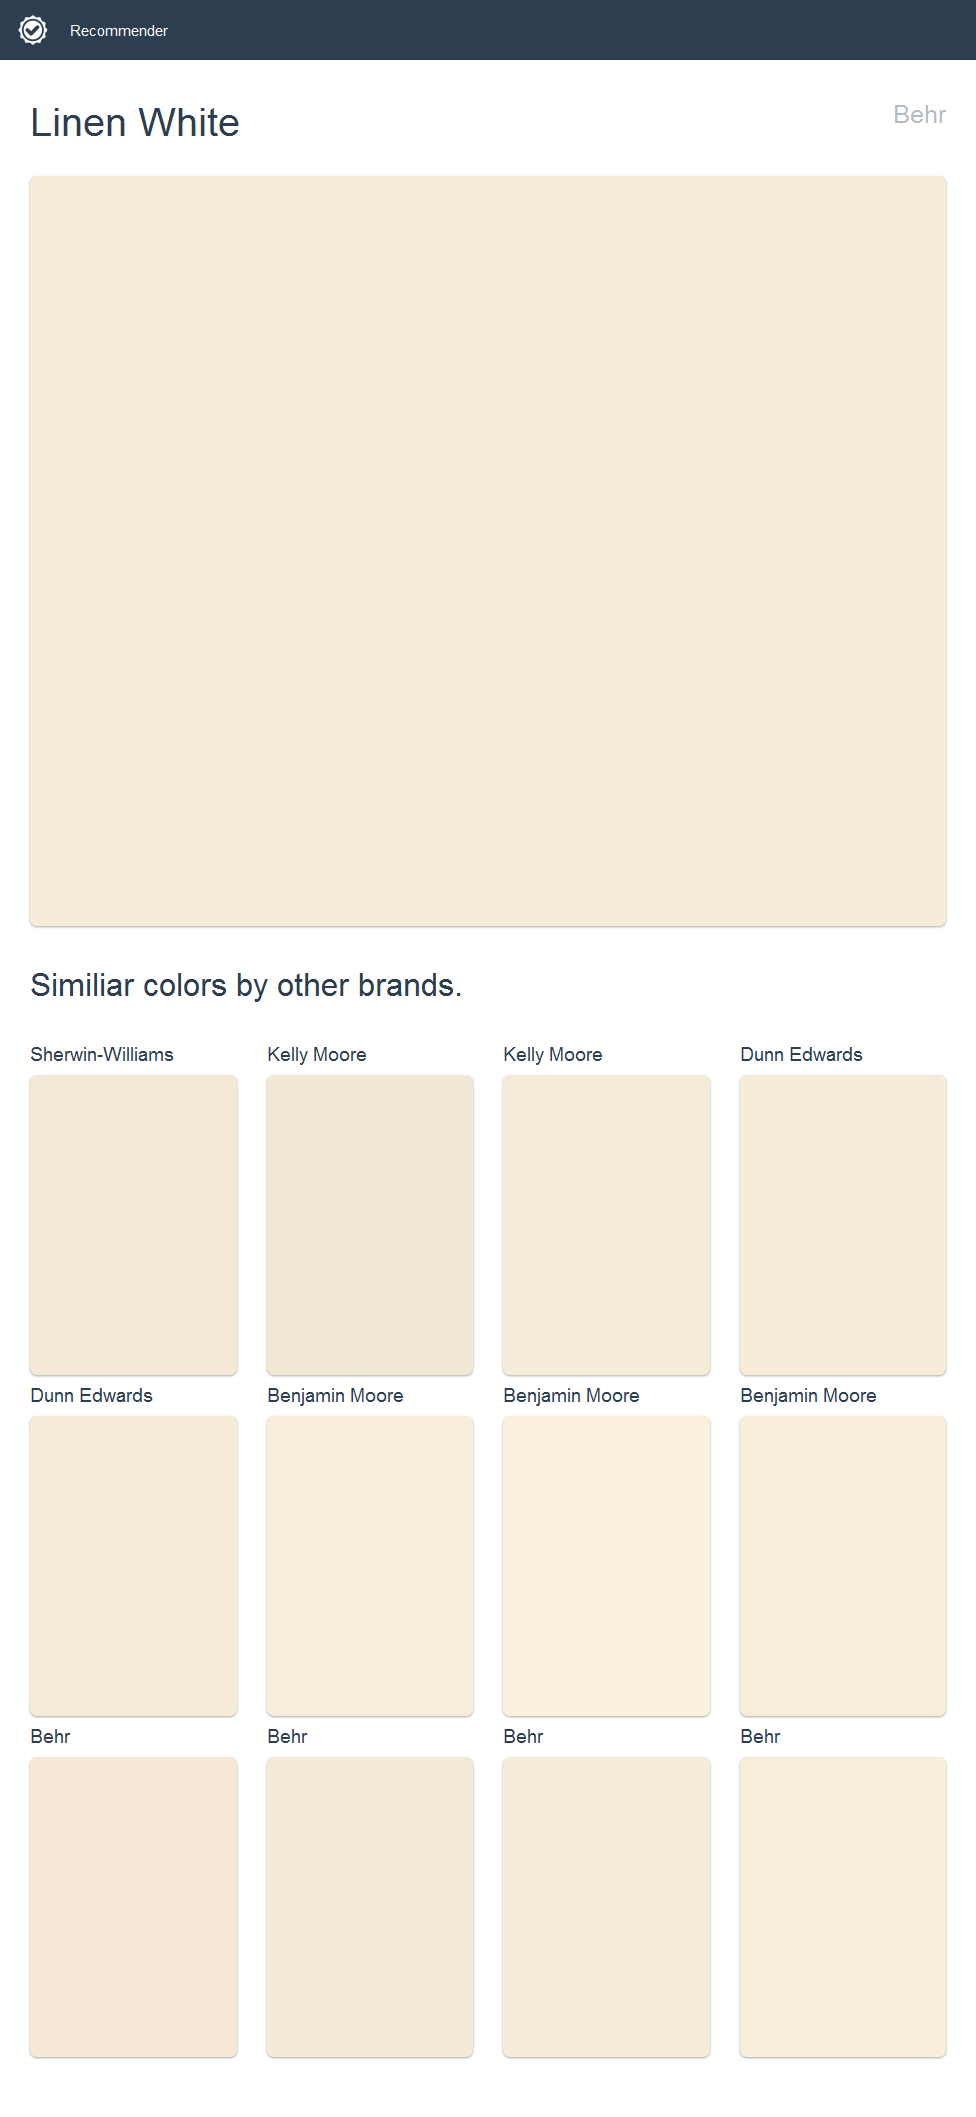 Linen White Behr Click The Image To See Similiar Colors By Other Brands